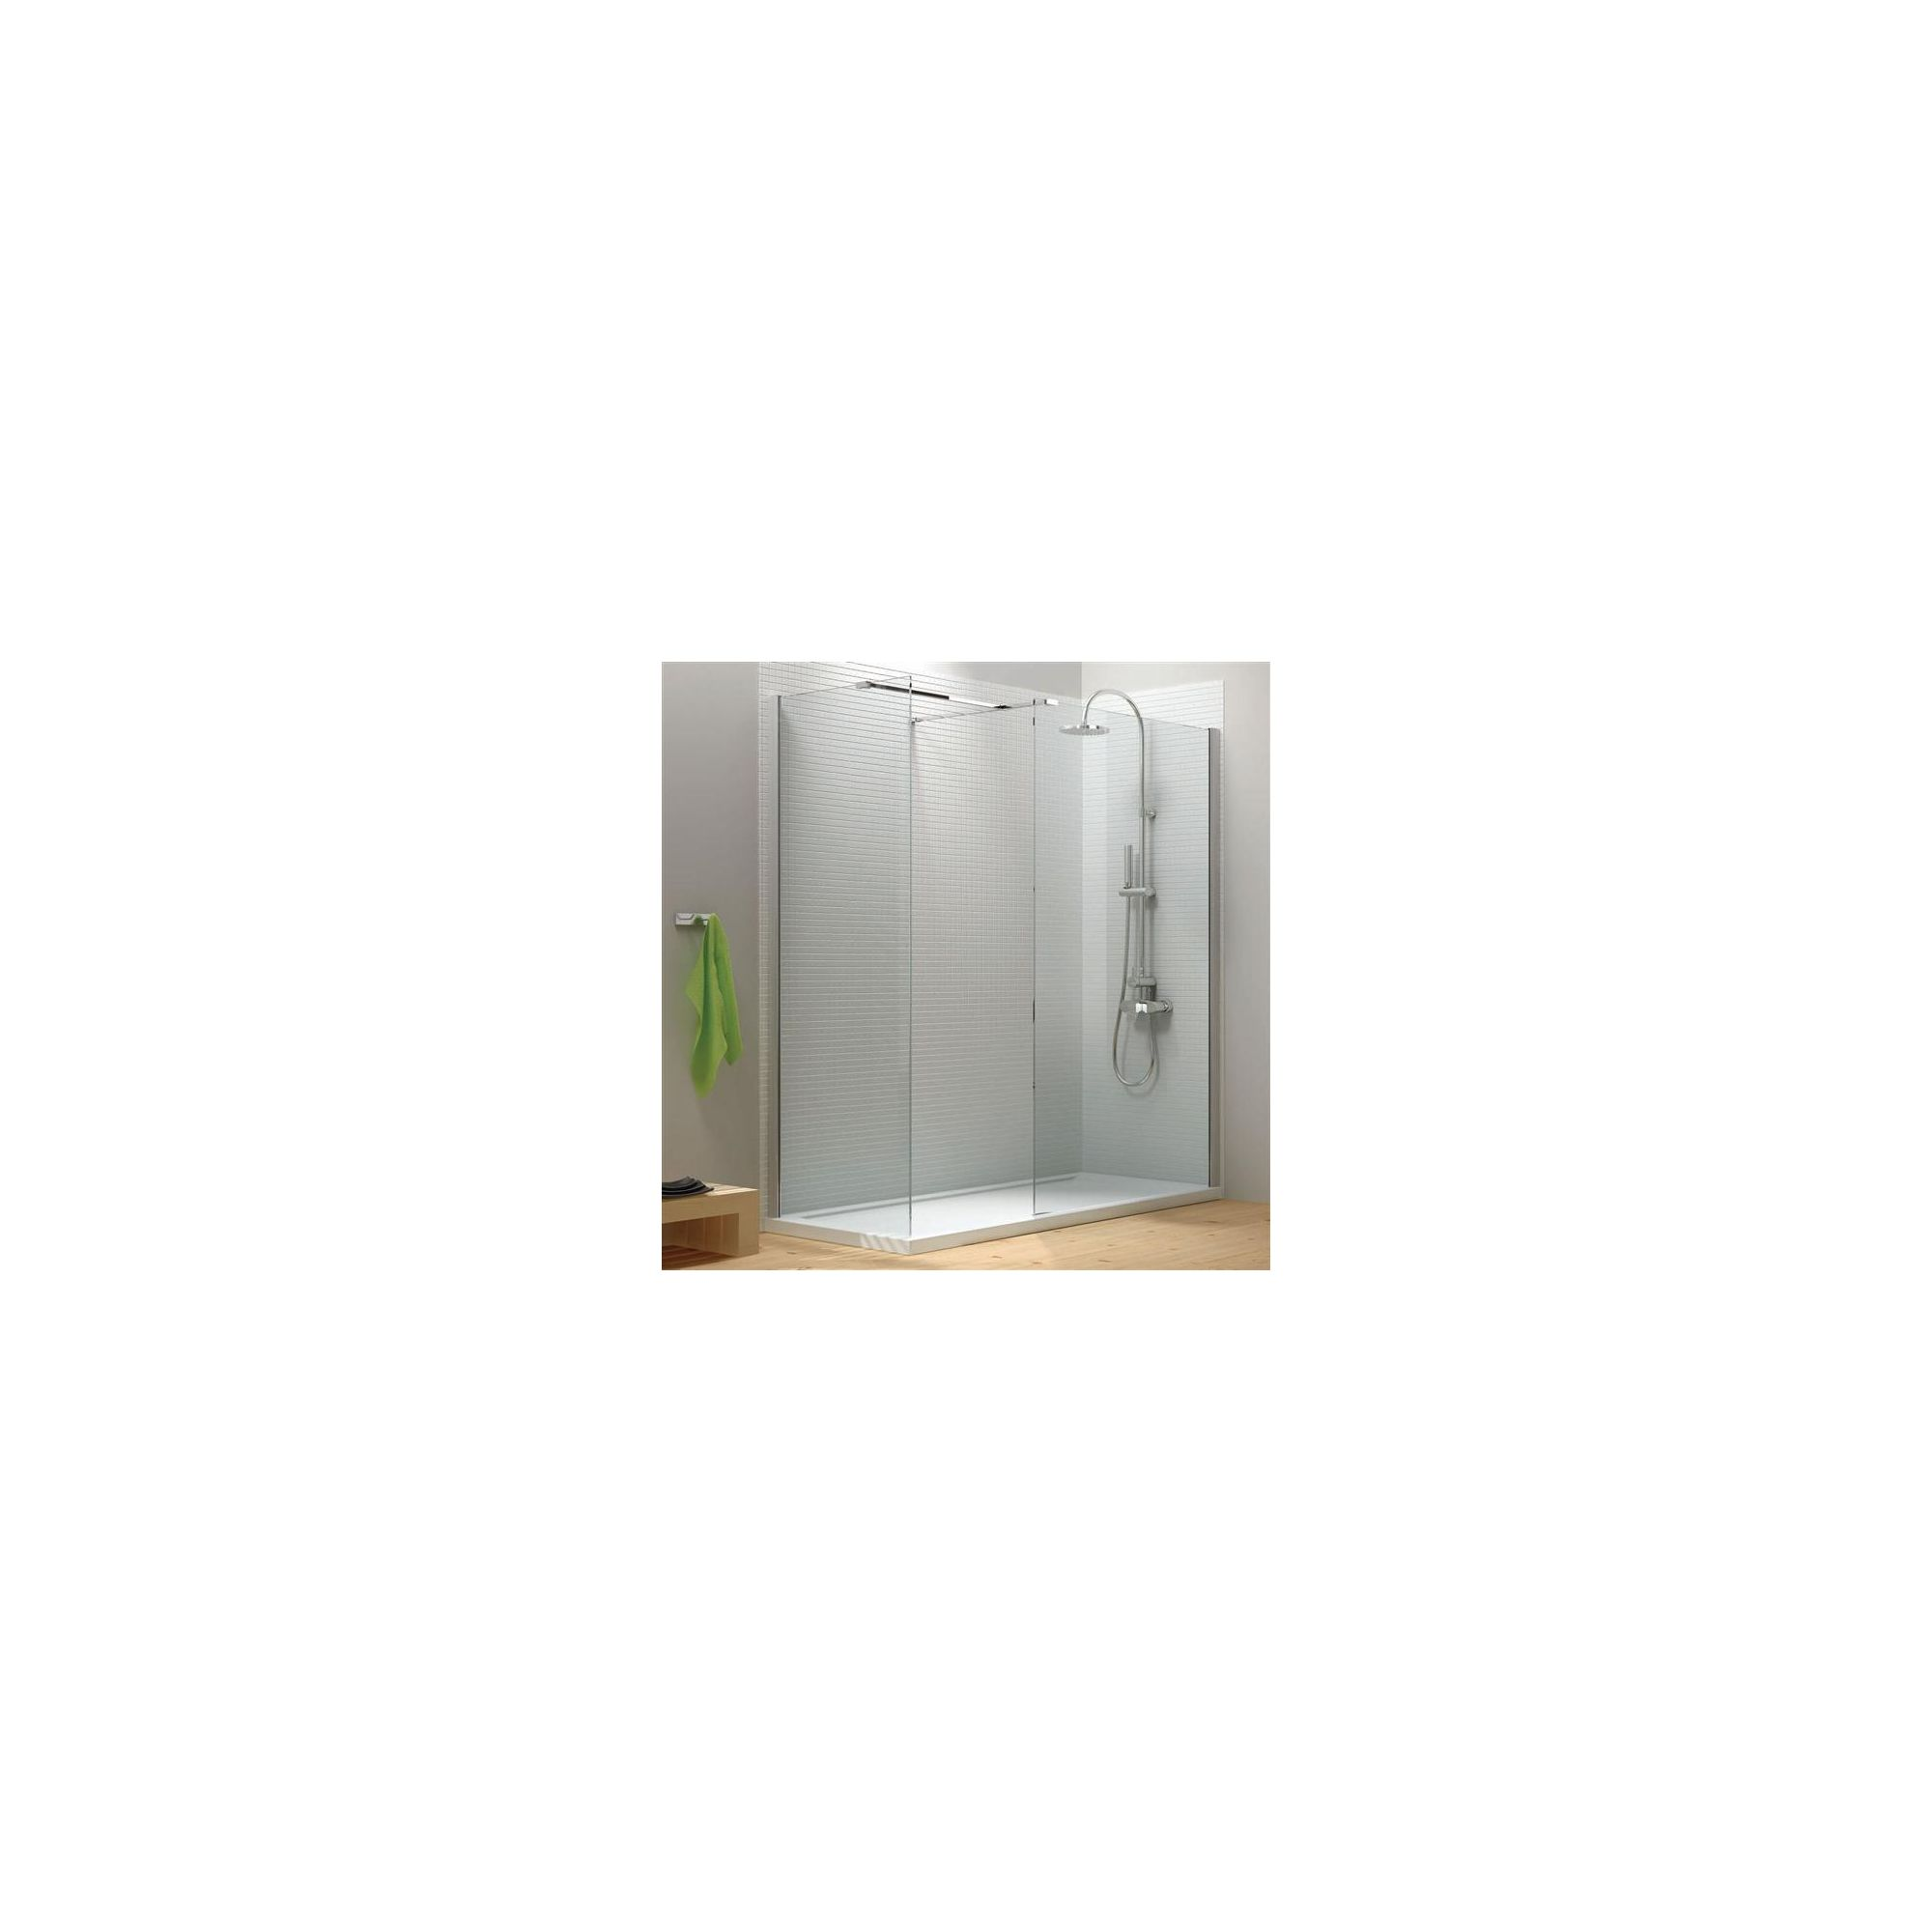 Merlyn Vivid Eight Walk-In Shower Enclosure, 1500mm x 800mm, excluding Tray, 8mm Glass at Tesco Direct